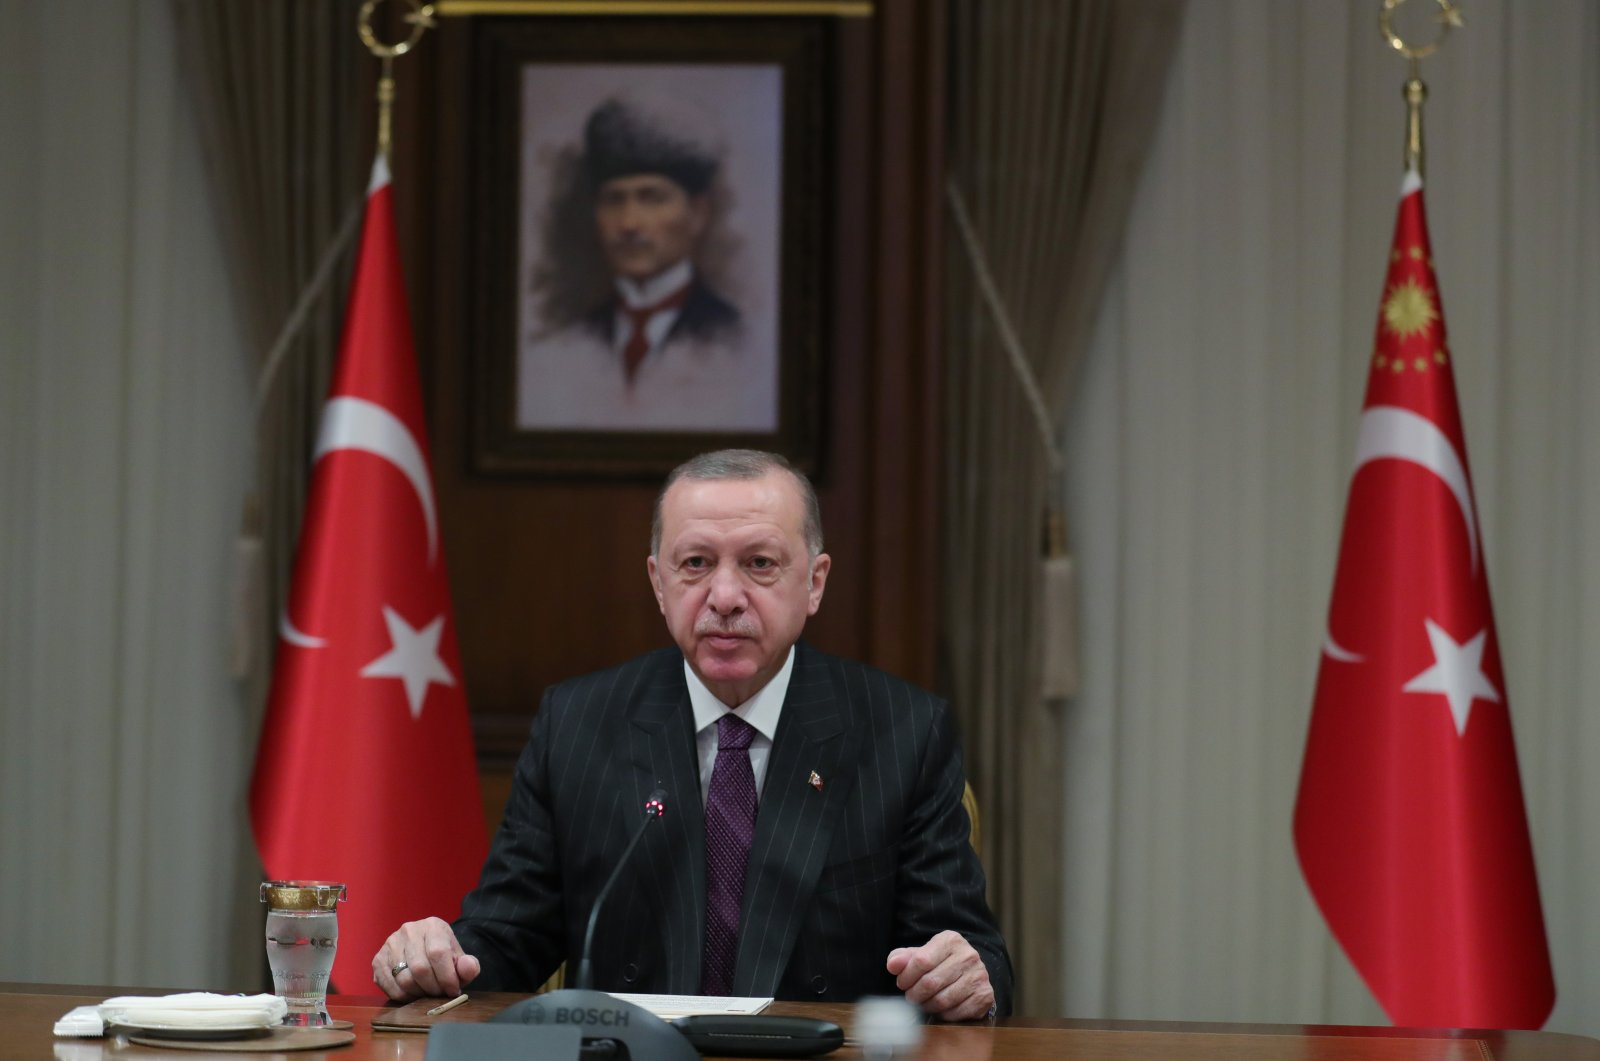 """President Recep Tayyip Erdoğan addresses a virtual meeting themed """"Staying Human in The Digital Age"""" of the 4th Women and Justice Summit organized by the Women and Democracy Association (KADEM), Nov. 26, 2020. (AA Photo)"""